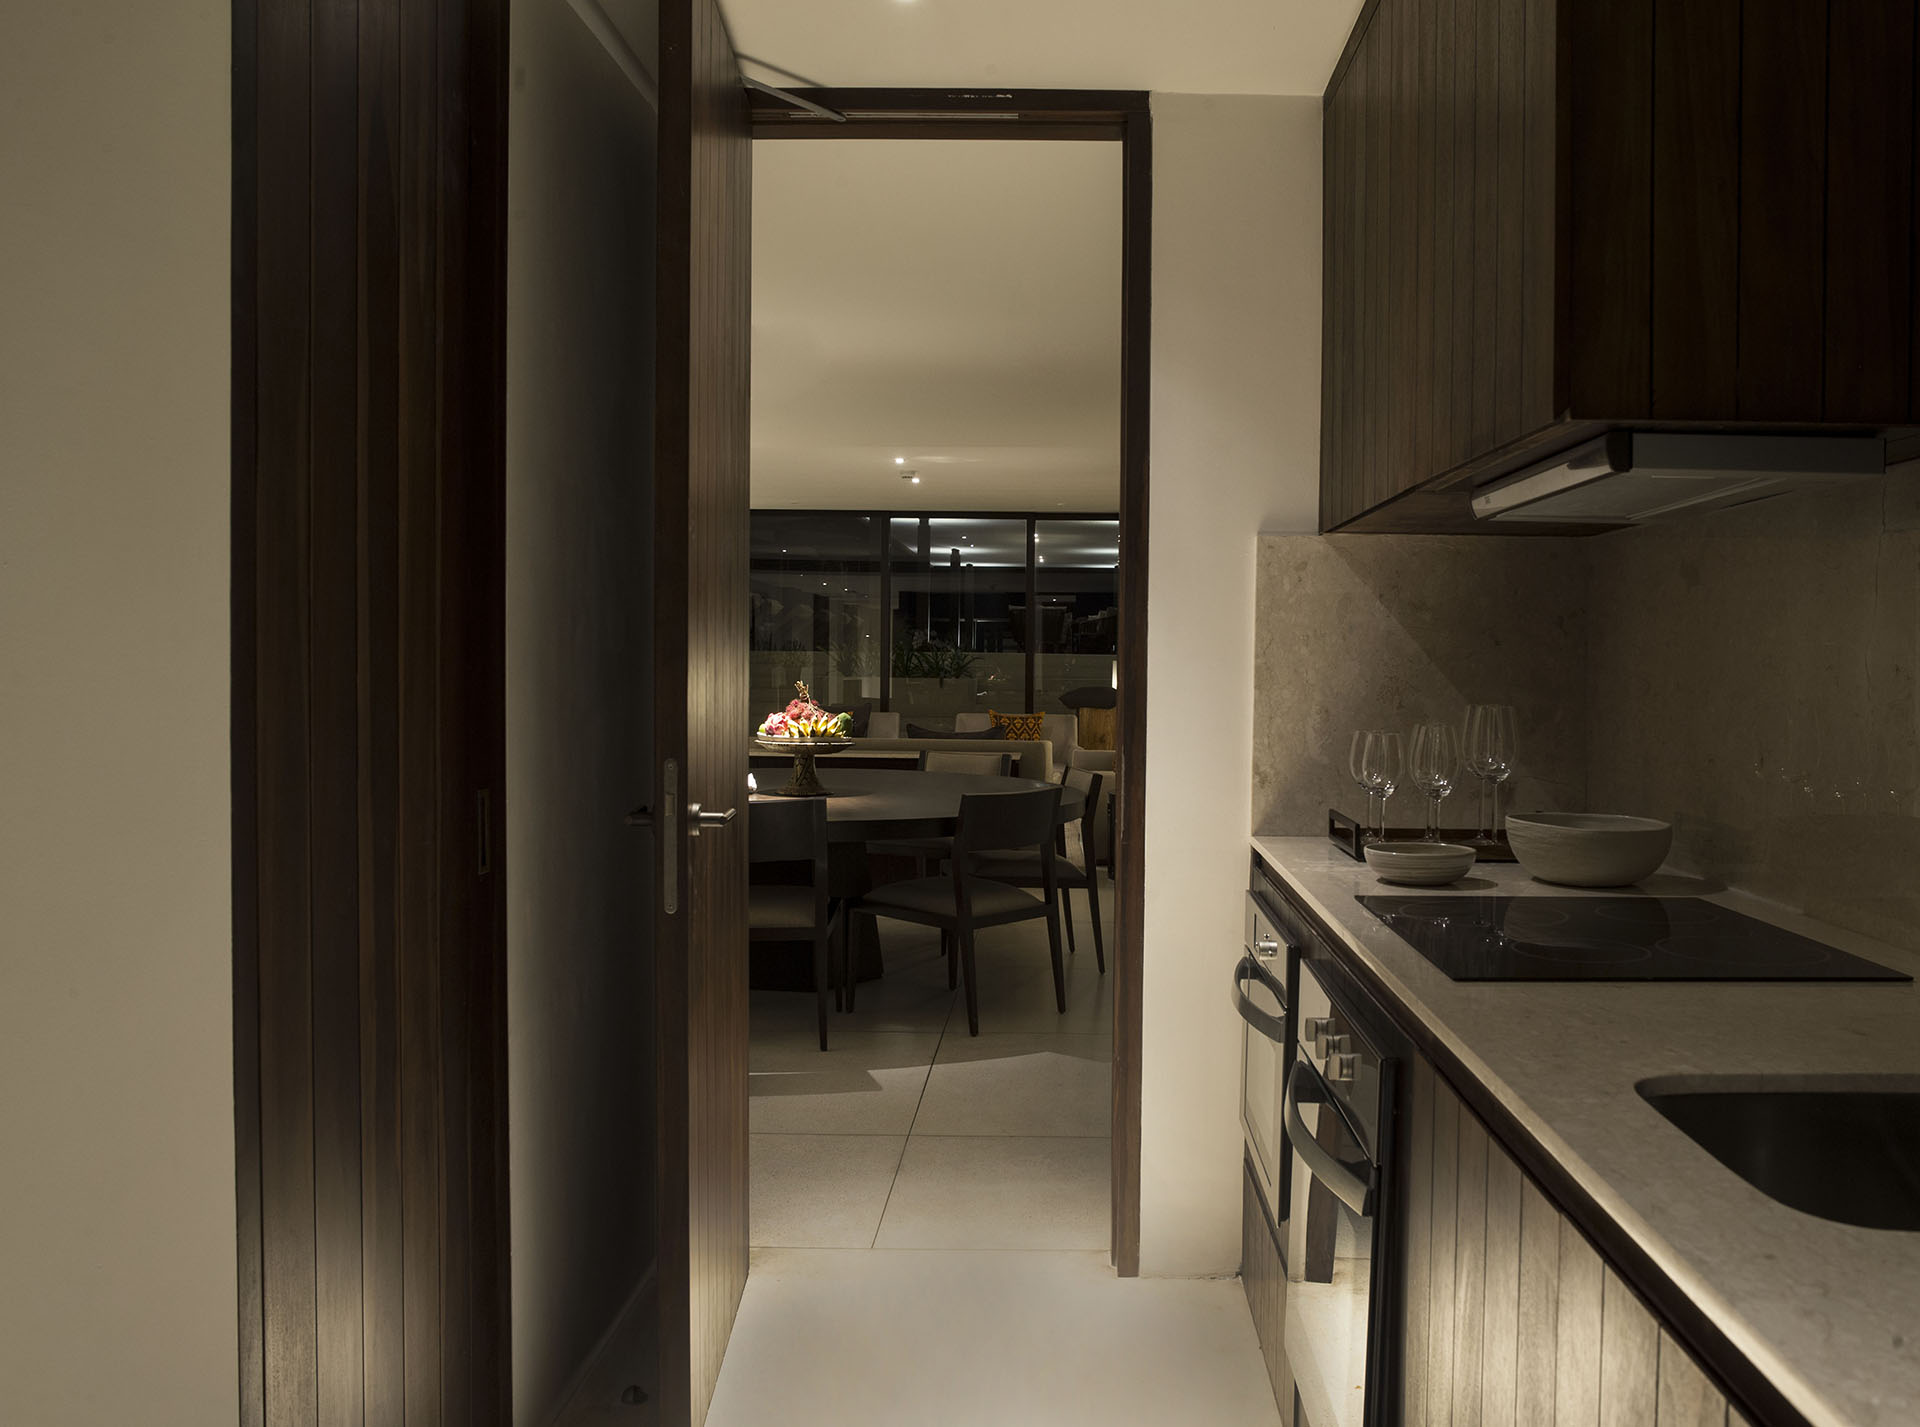 Alila Penthouse - Kitchen